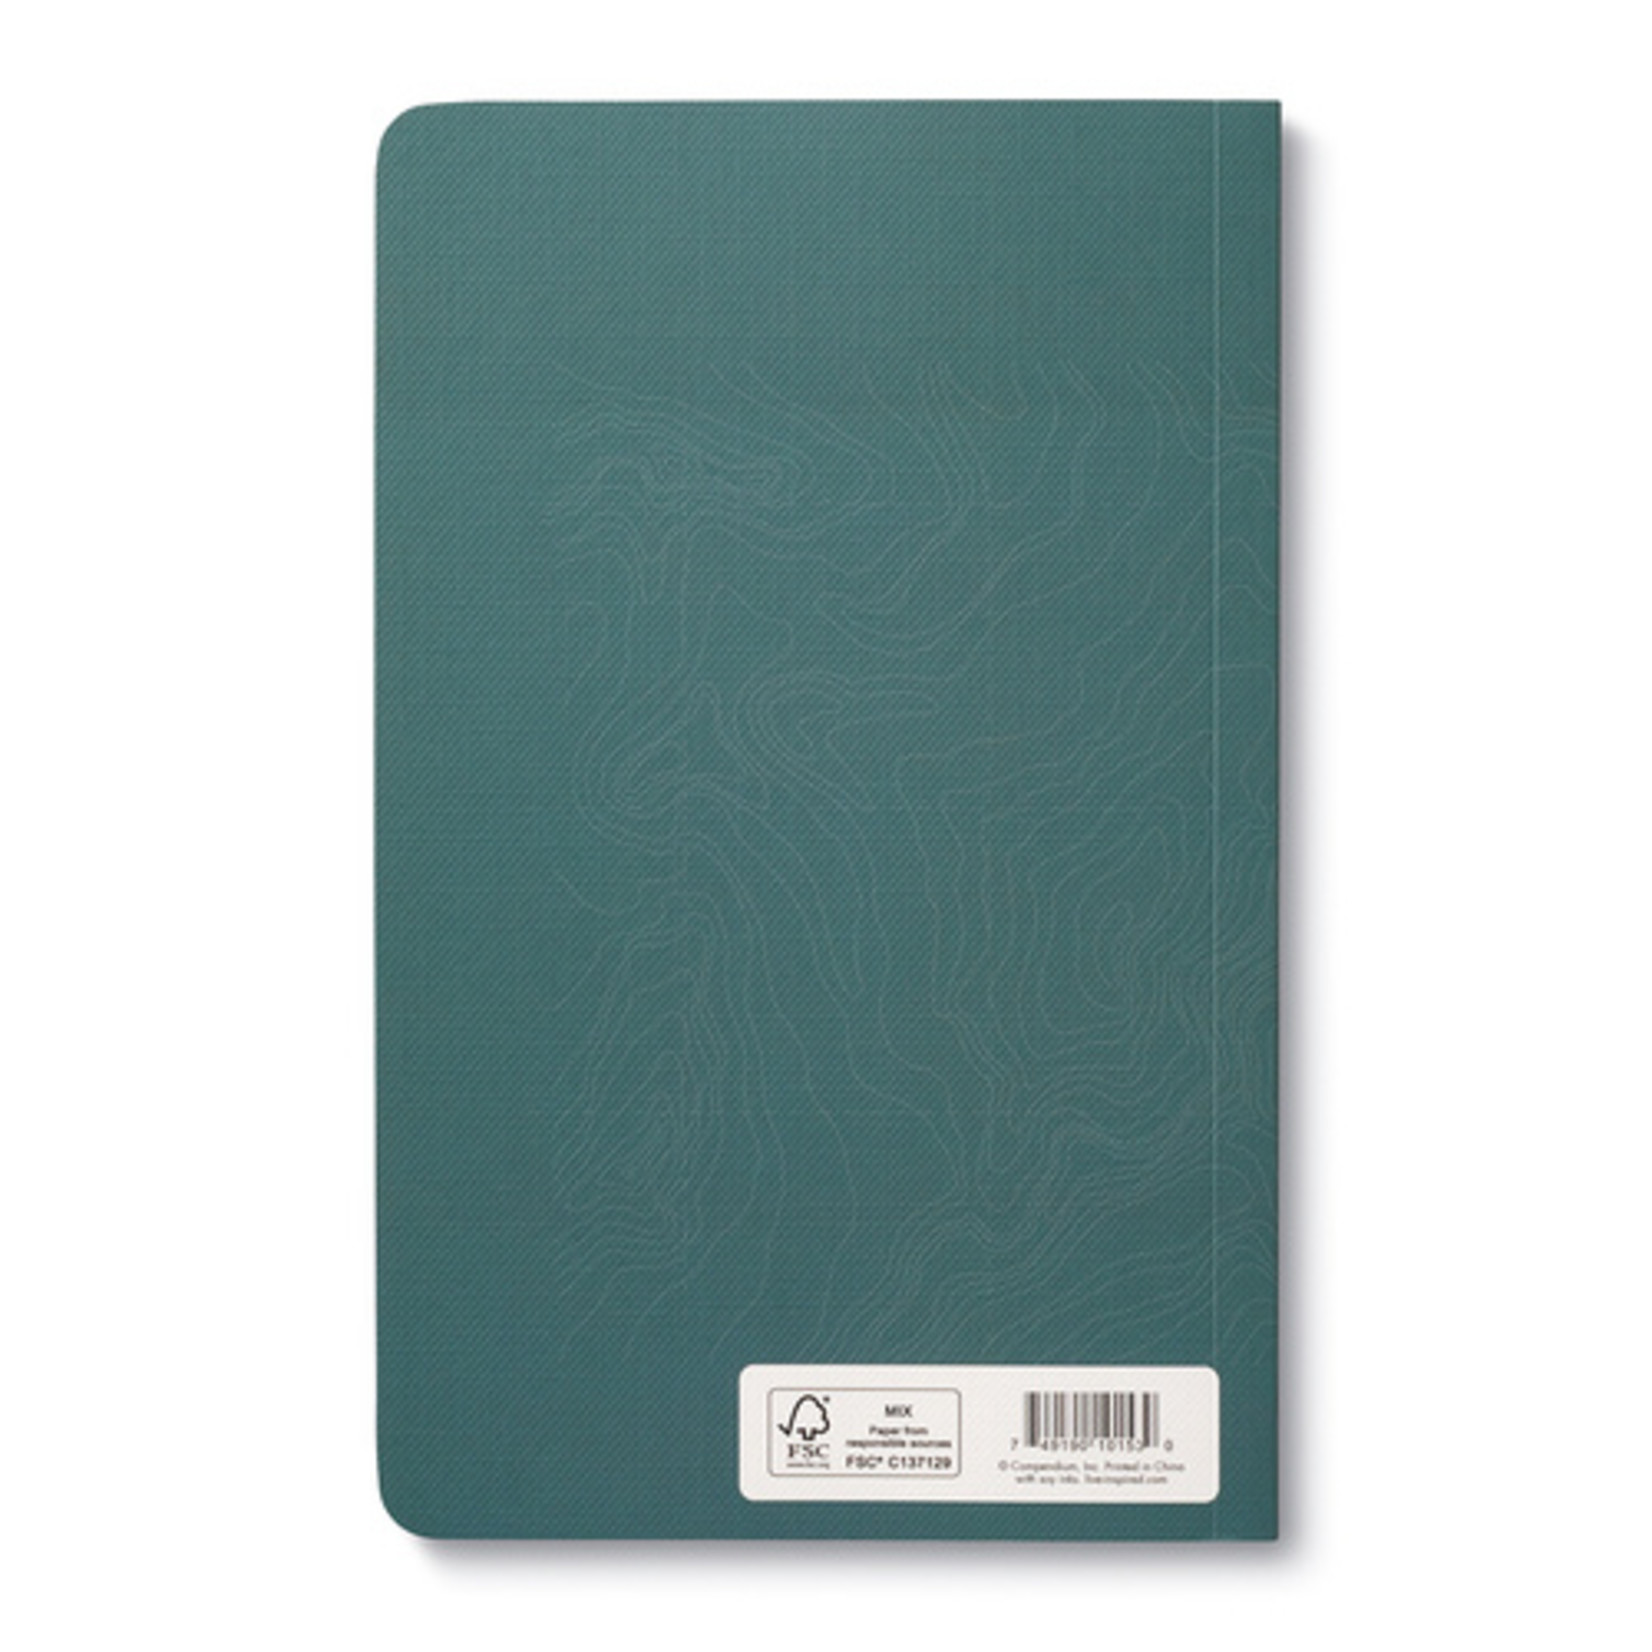 WRITE NOW JOURNAL- ALL SERIOUS DARING STARTS FROM WITHIN